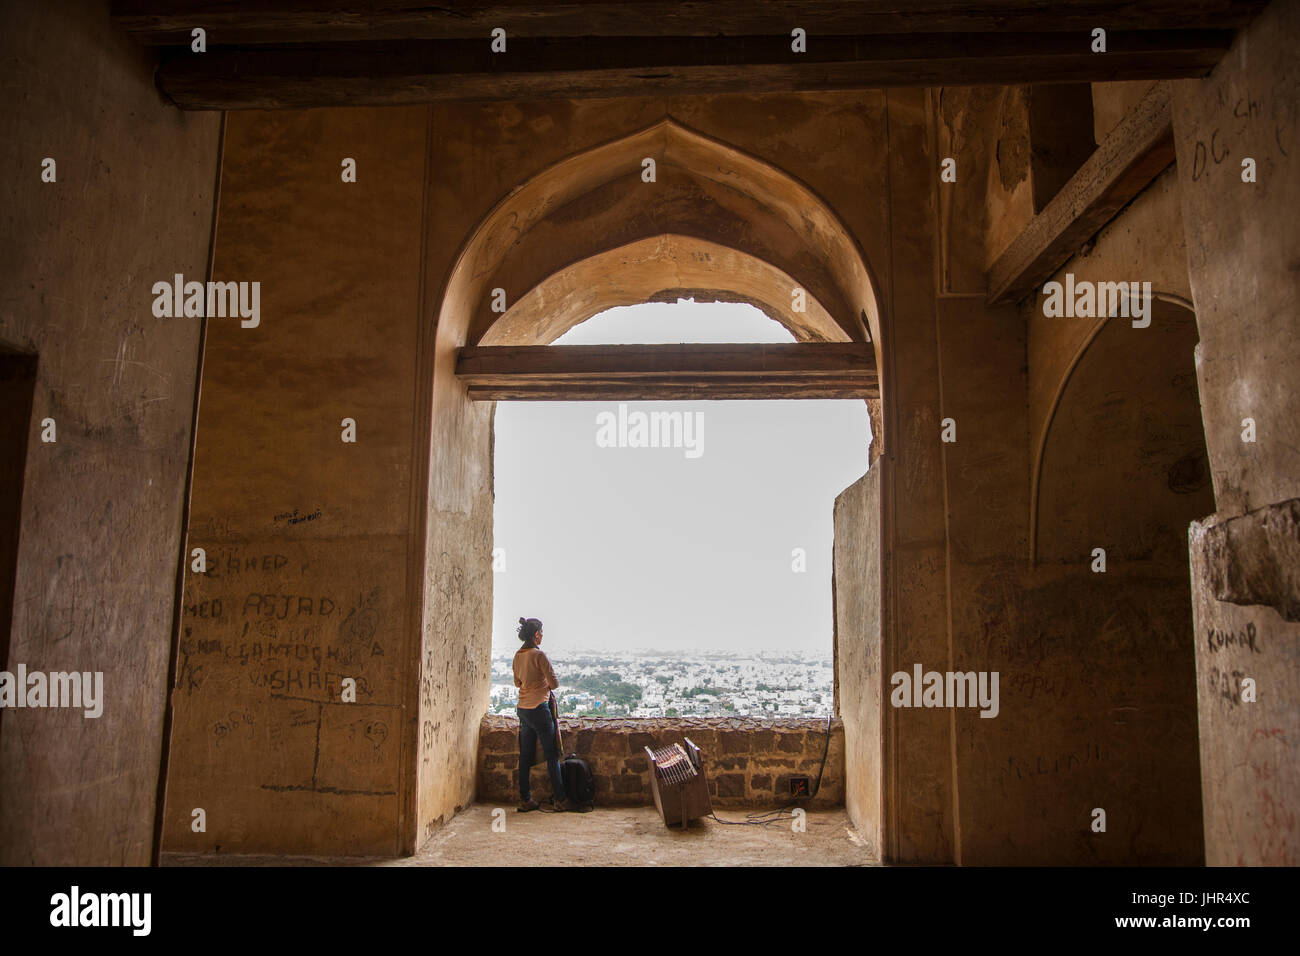 Introspection at the Golconda Fort, Hyderabad, India - Stock Image